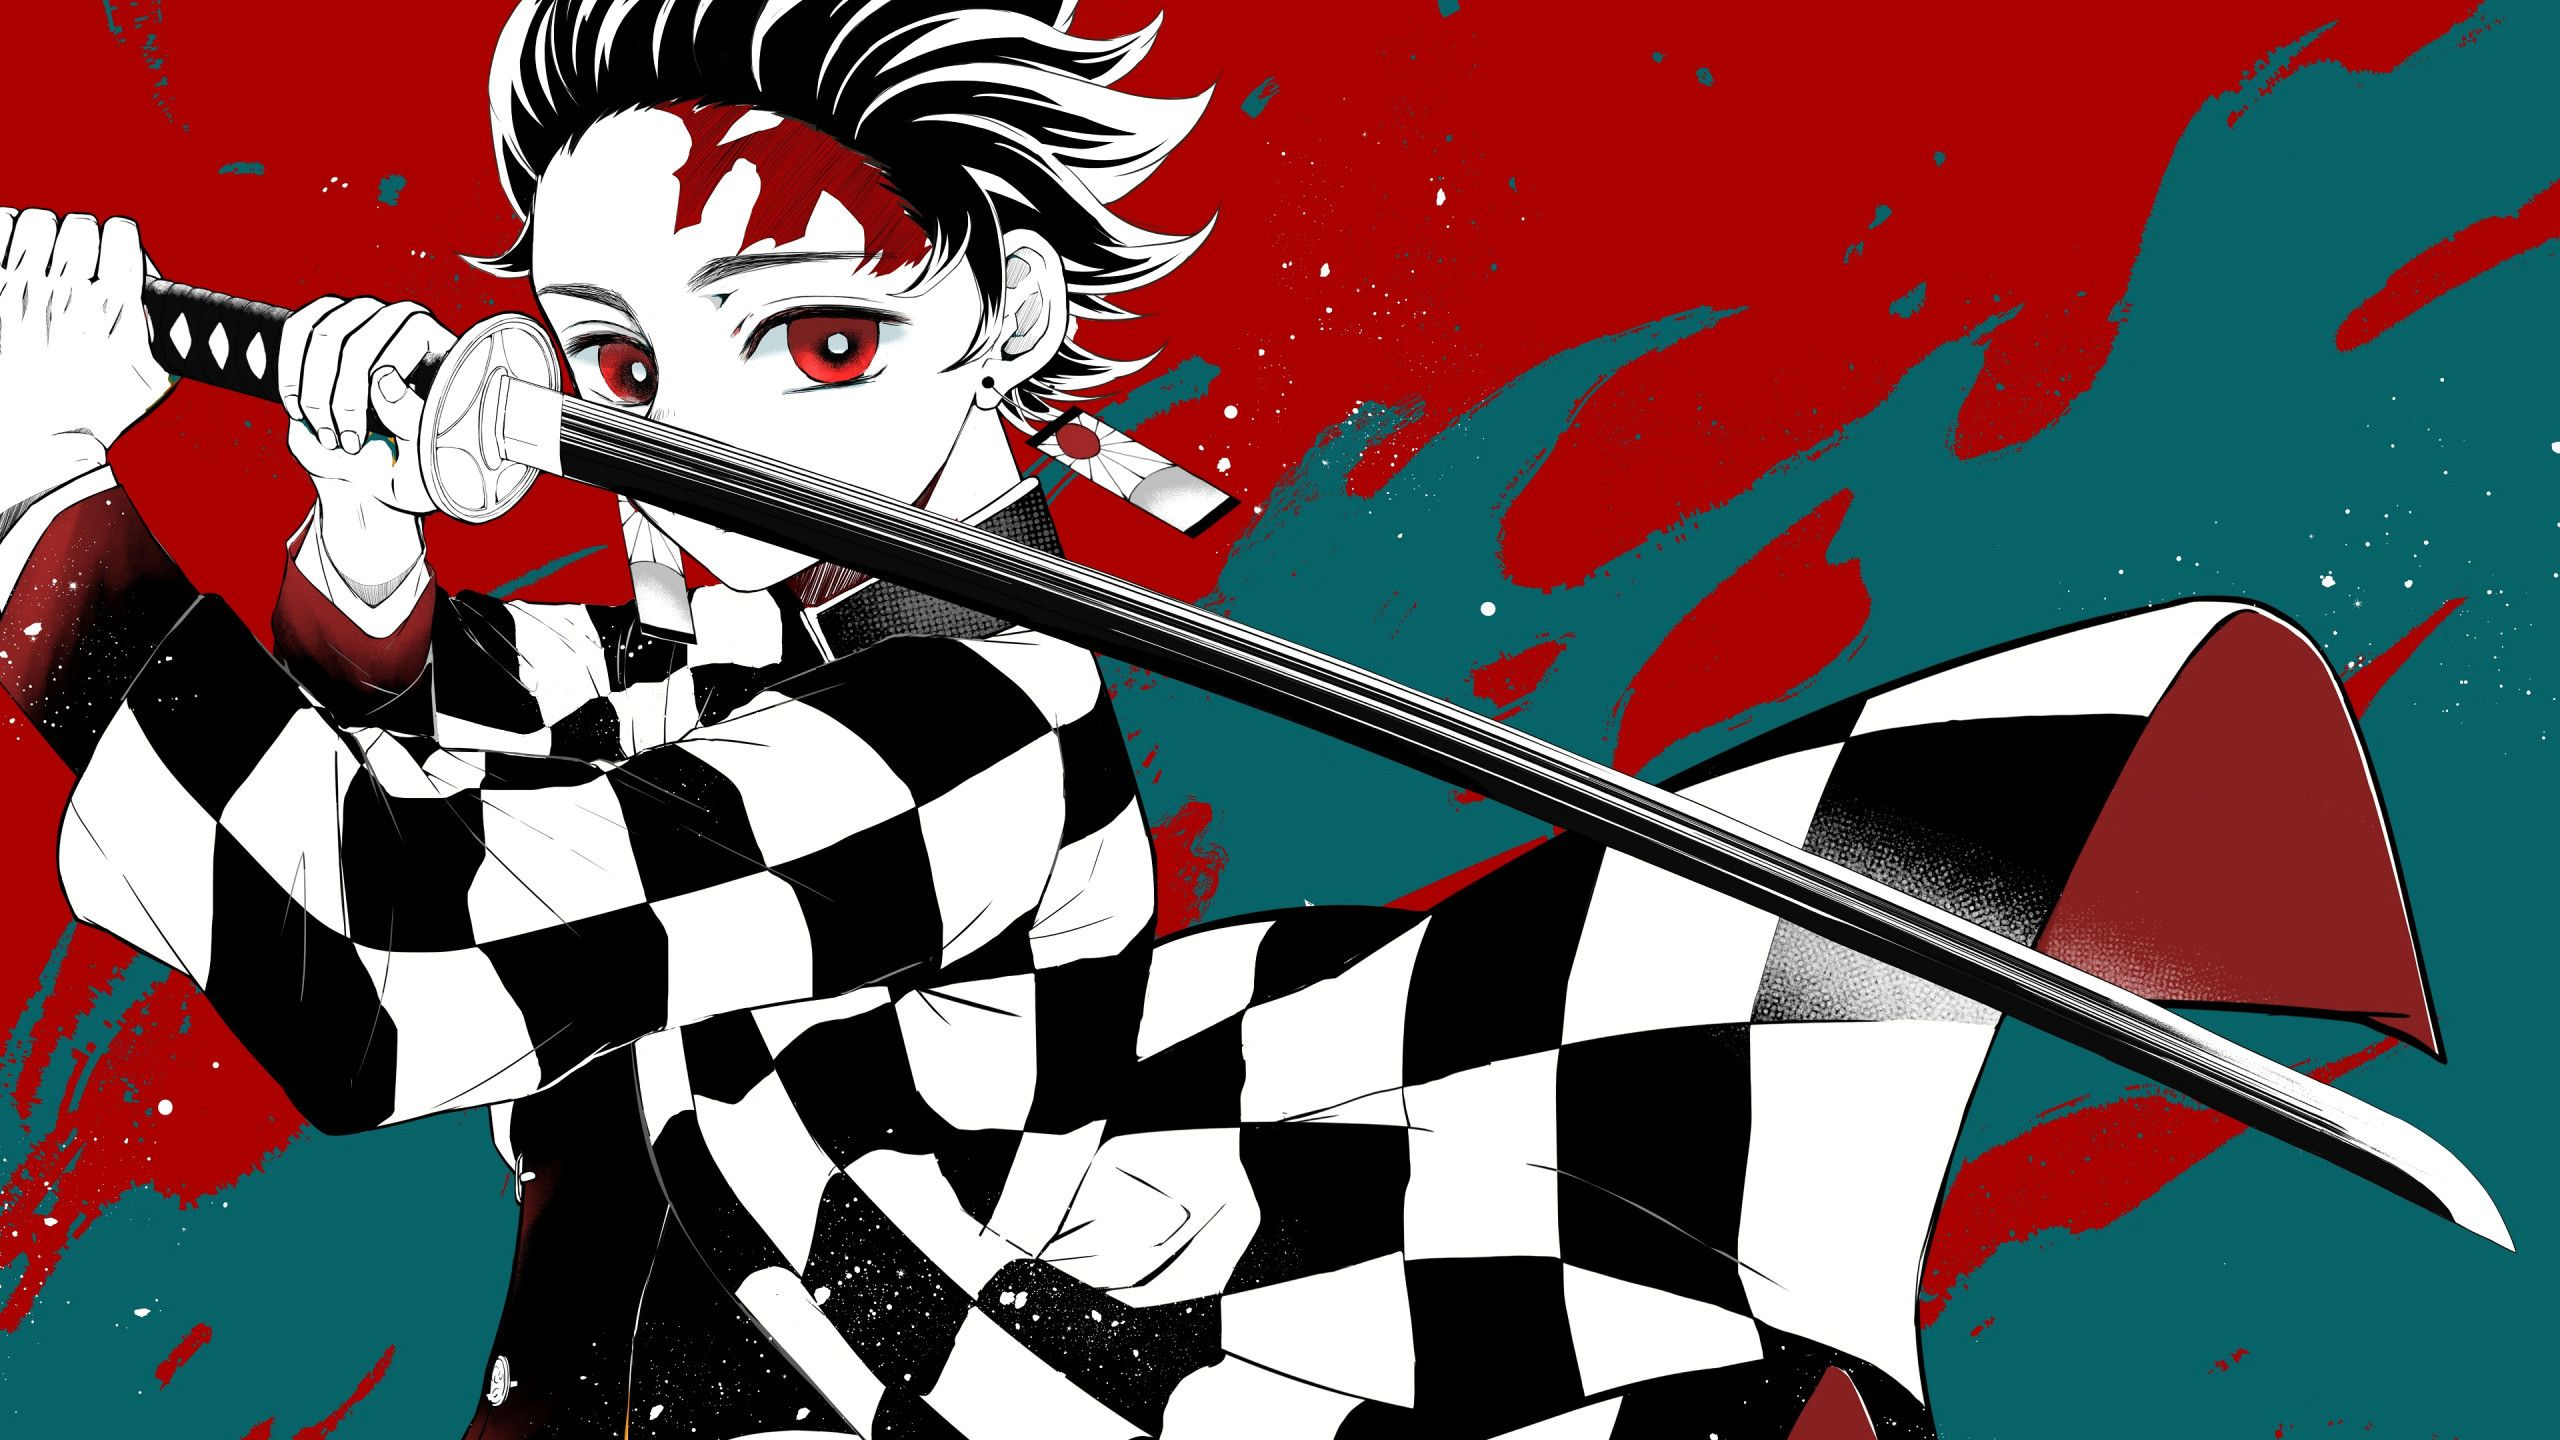 Fresh Download Wallpaper Sword Guy Demon Slayer Kimetsu No